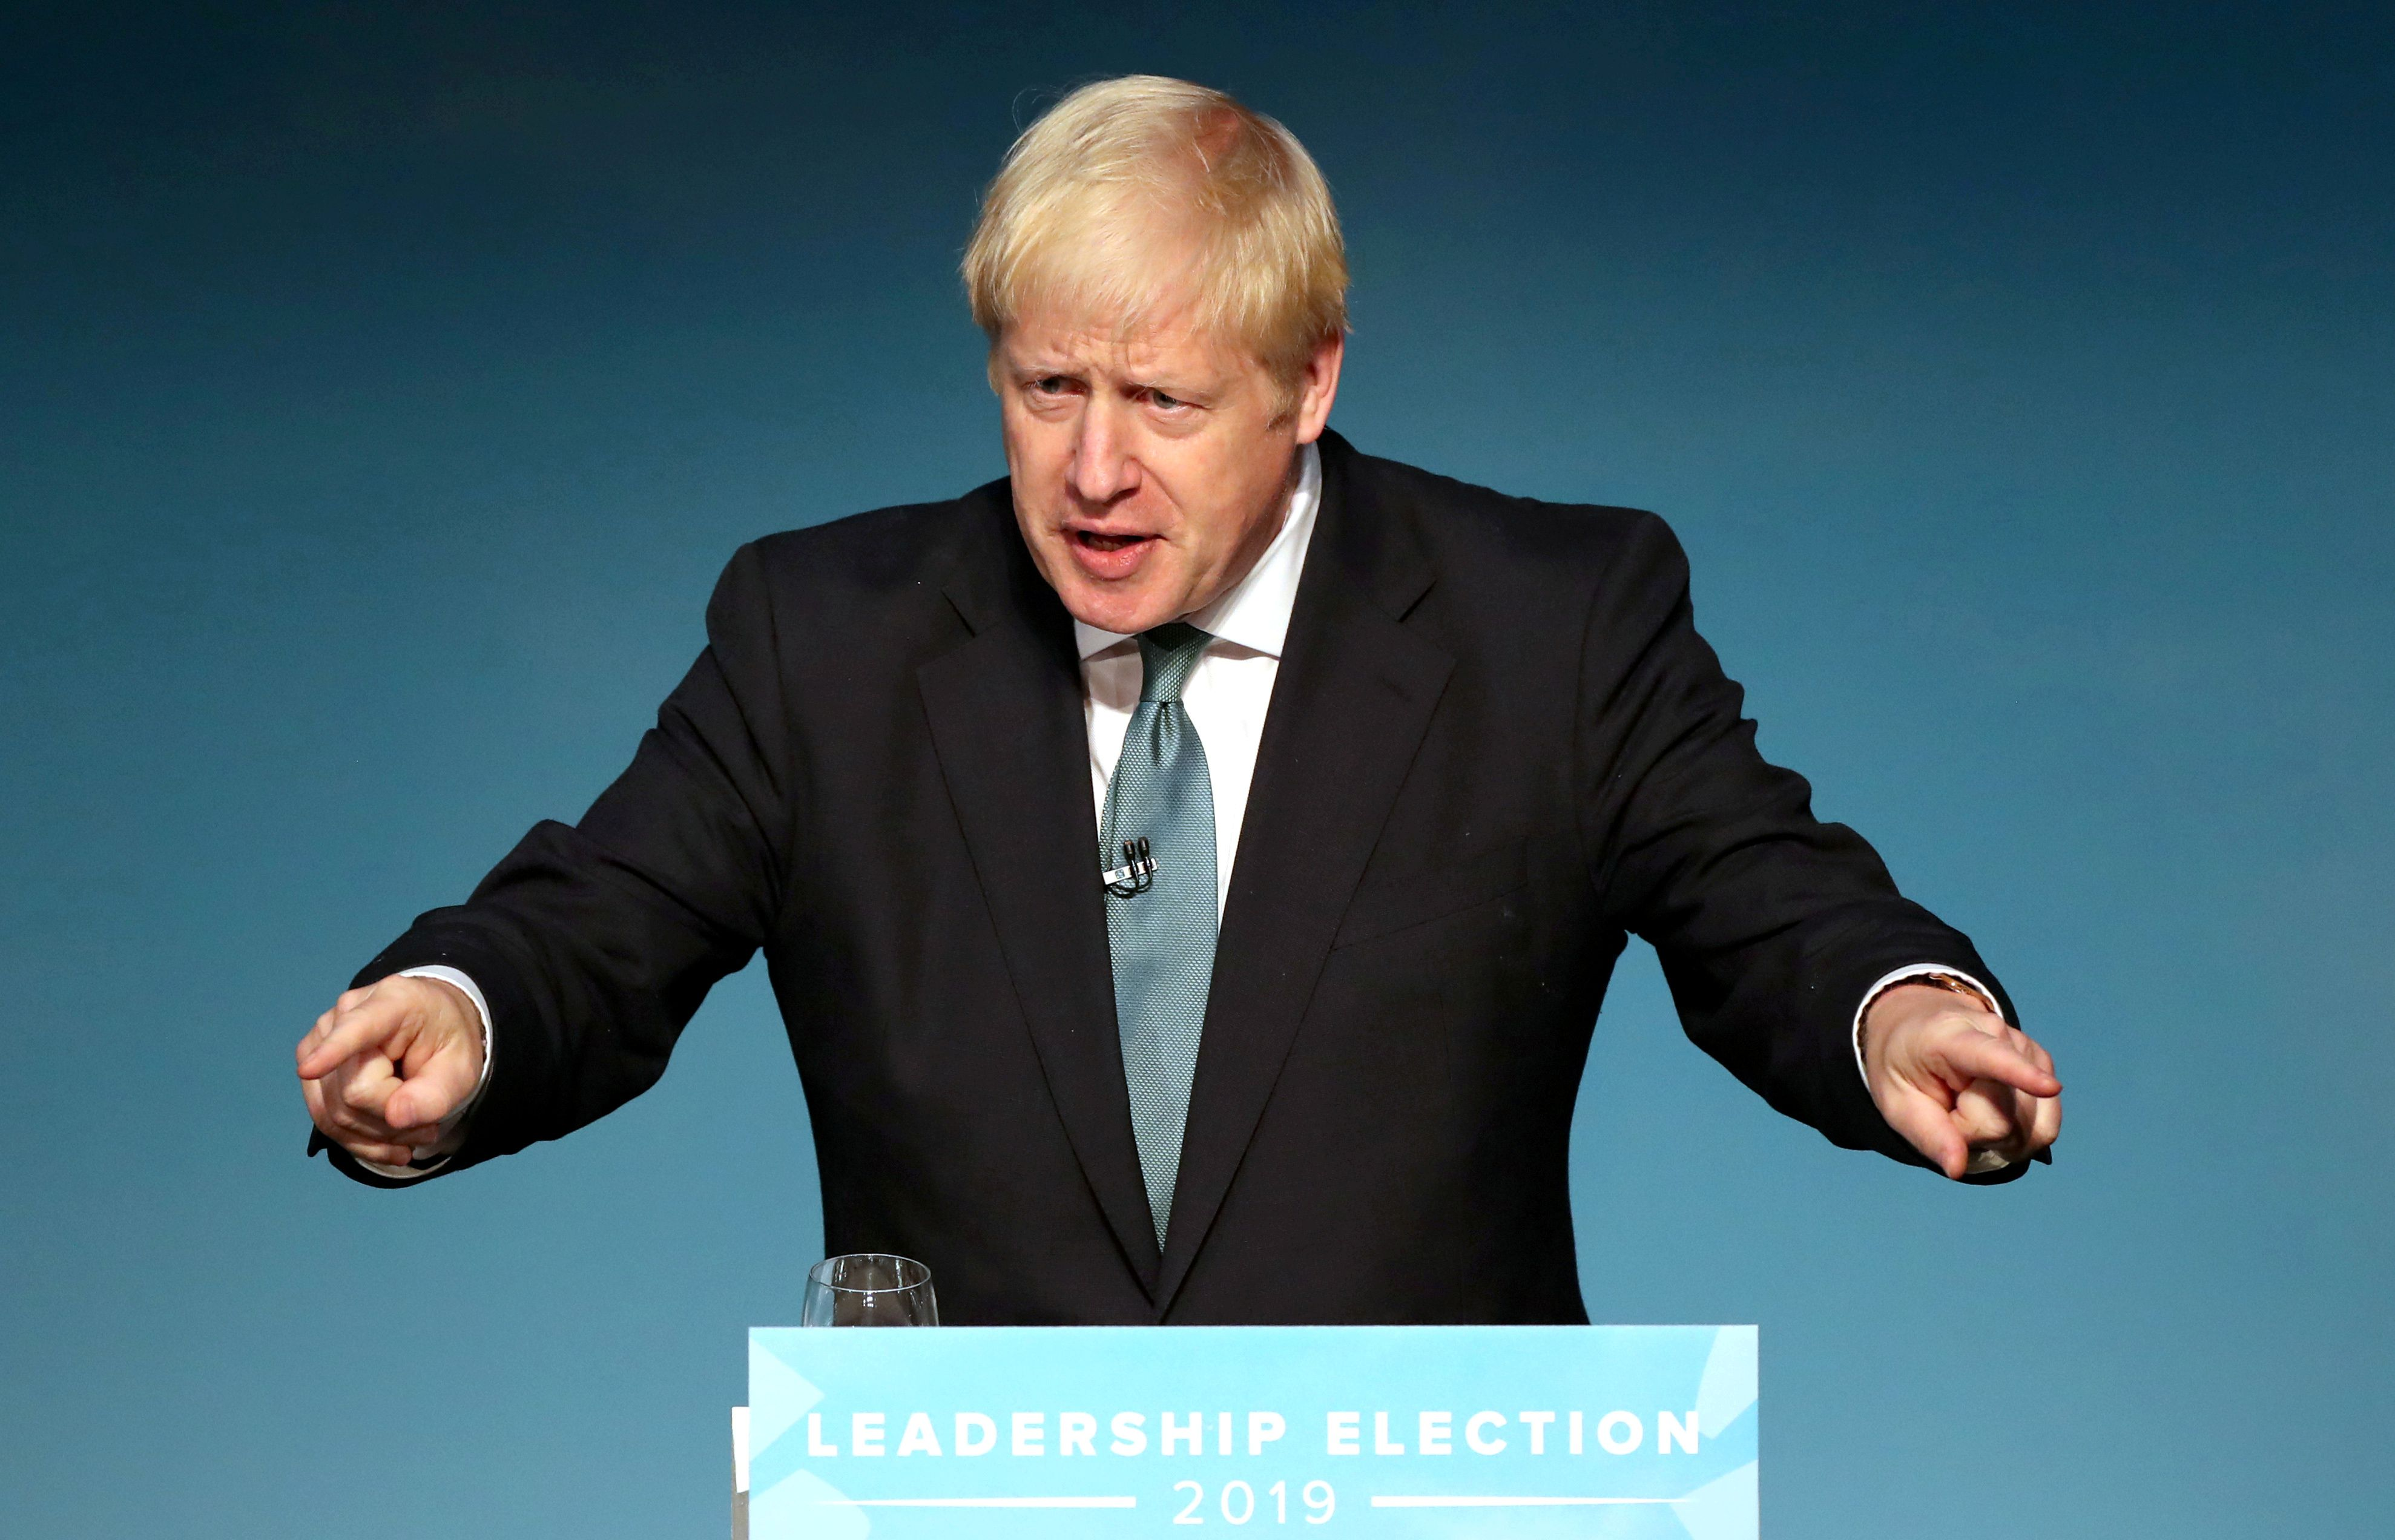 Buffoon or charismatic leader? Boris Johnson poised to become next British prime minister because of Brexit